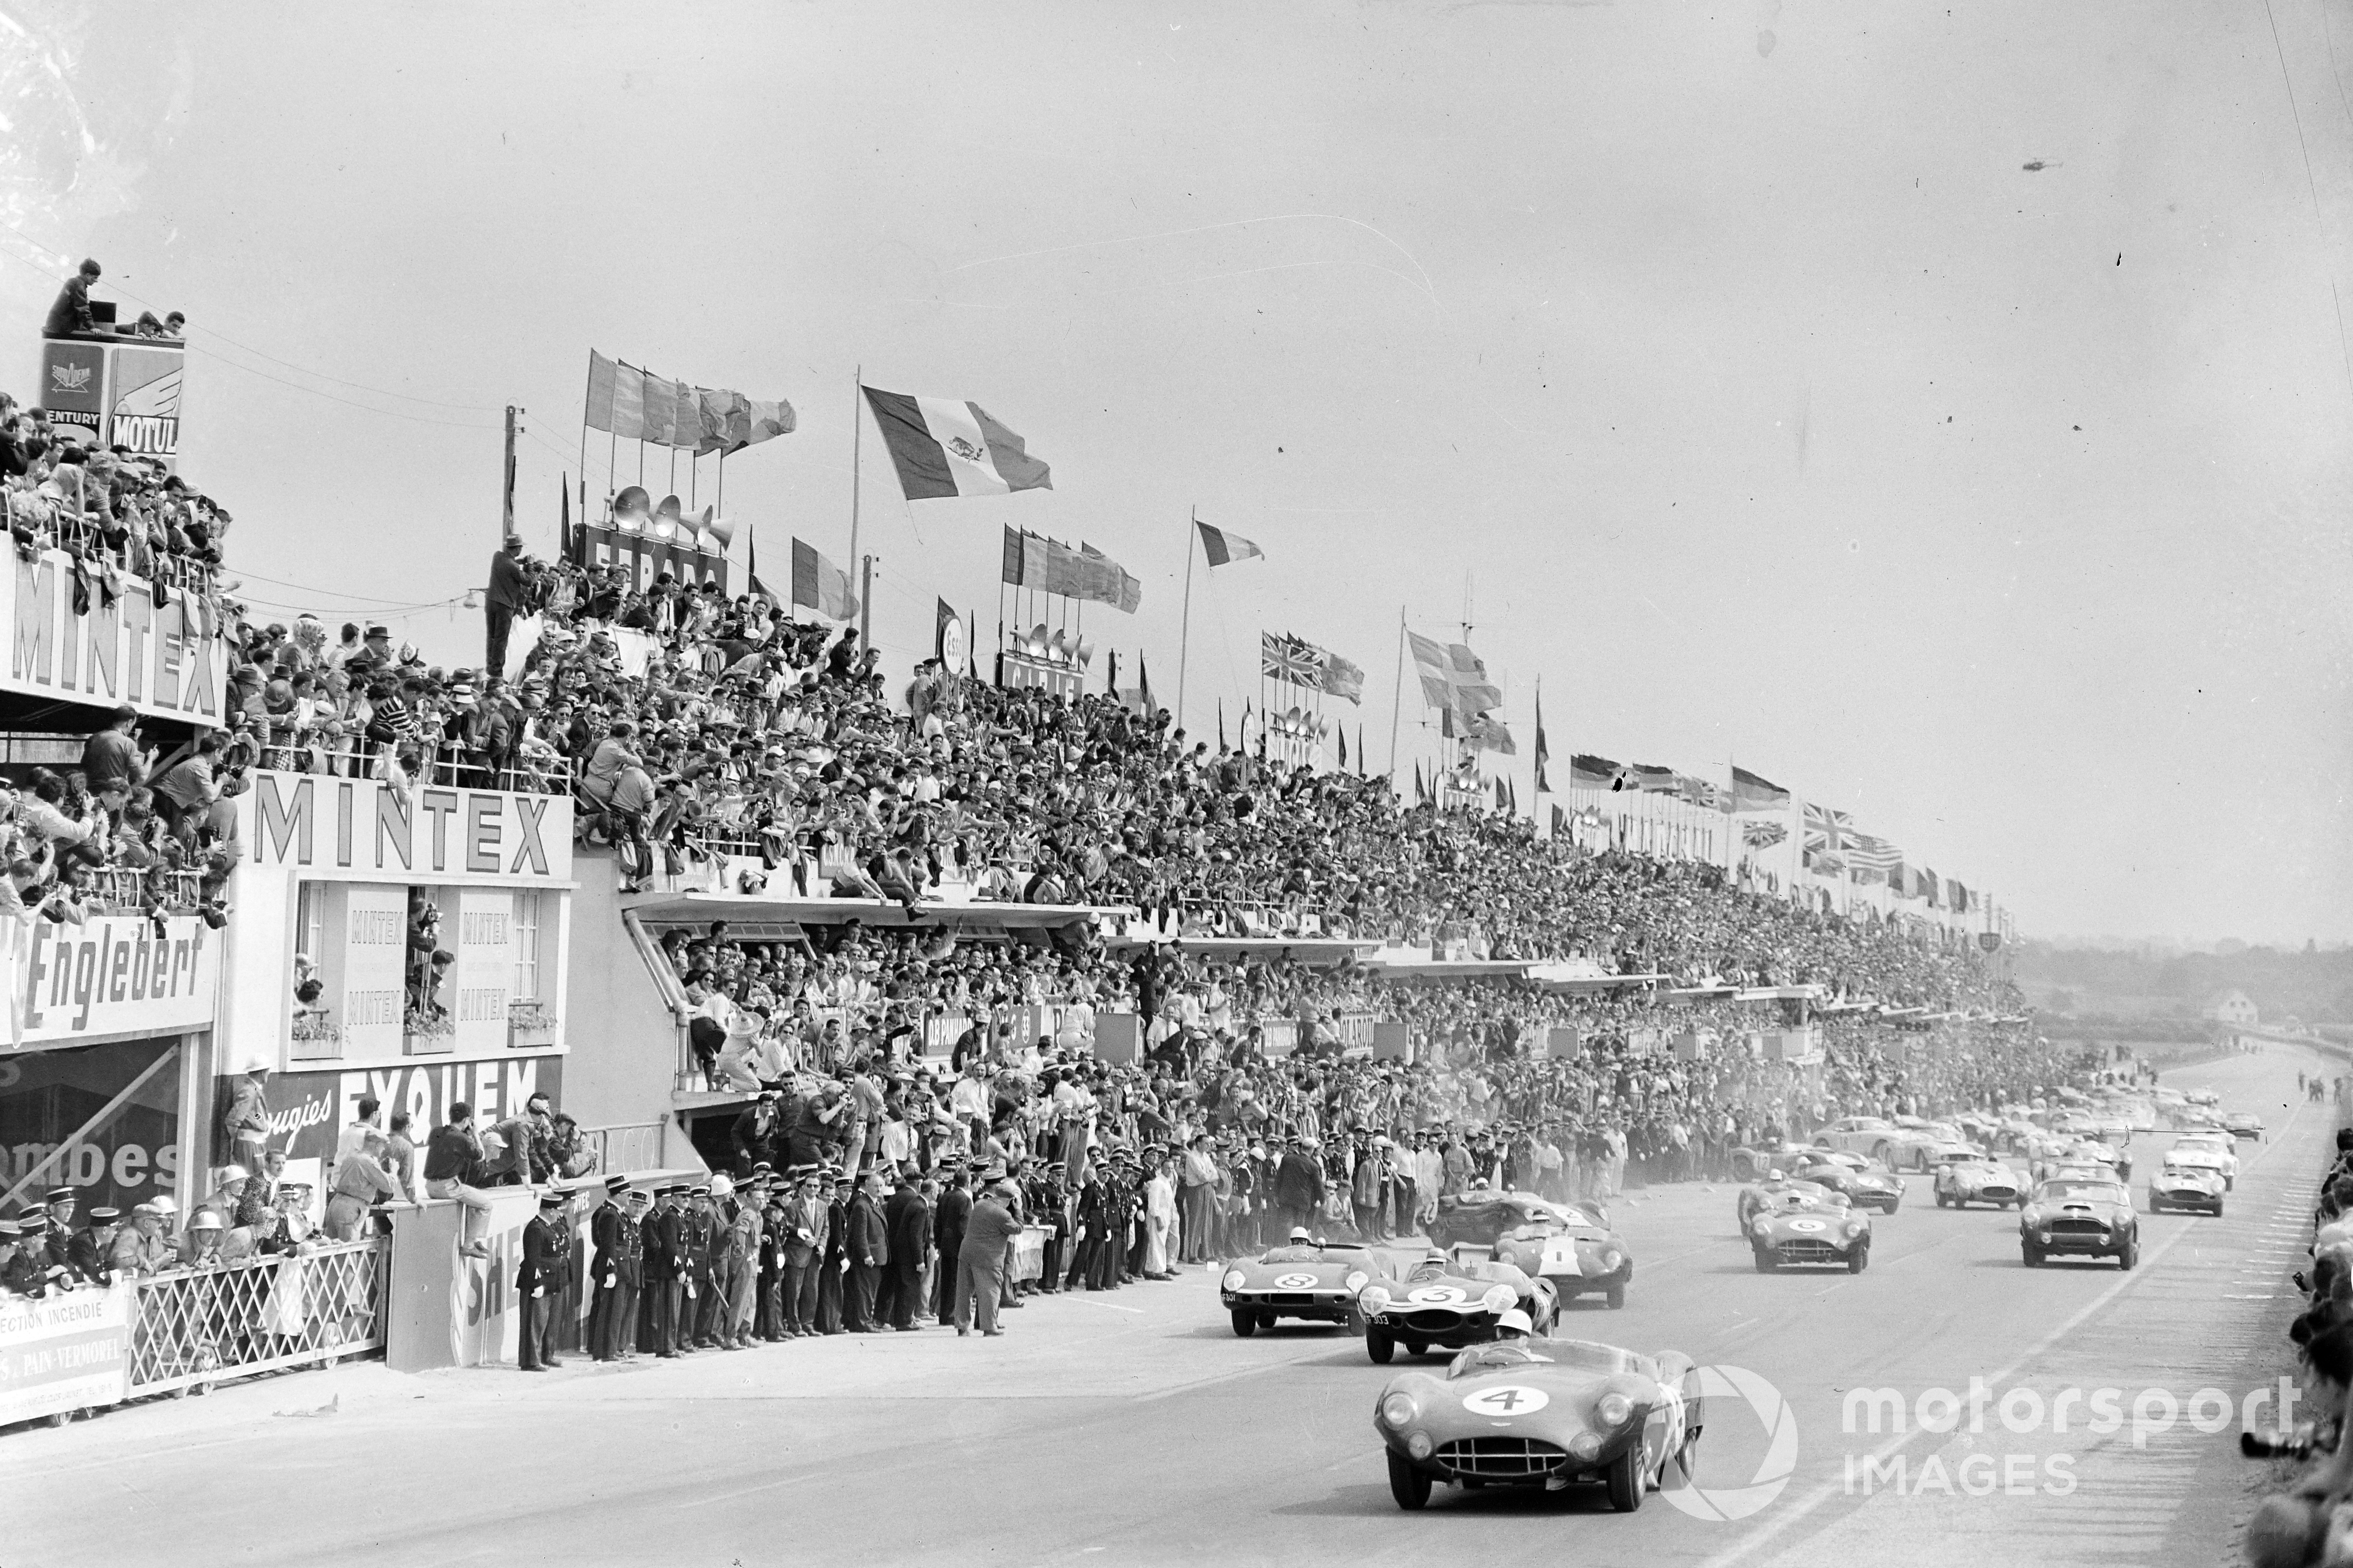 Stirling Moss (Aston Martin) leads at the start of the 1959 Le Mans 24 Hours